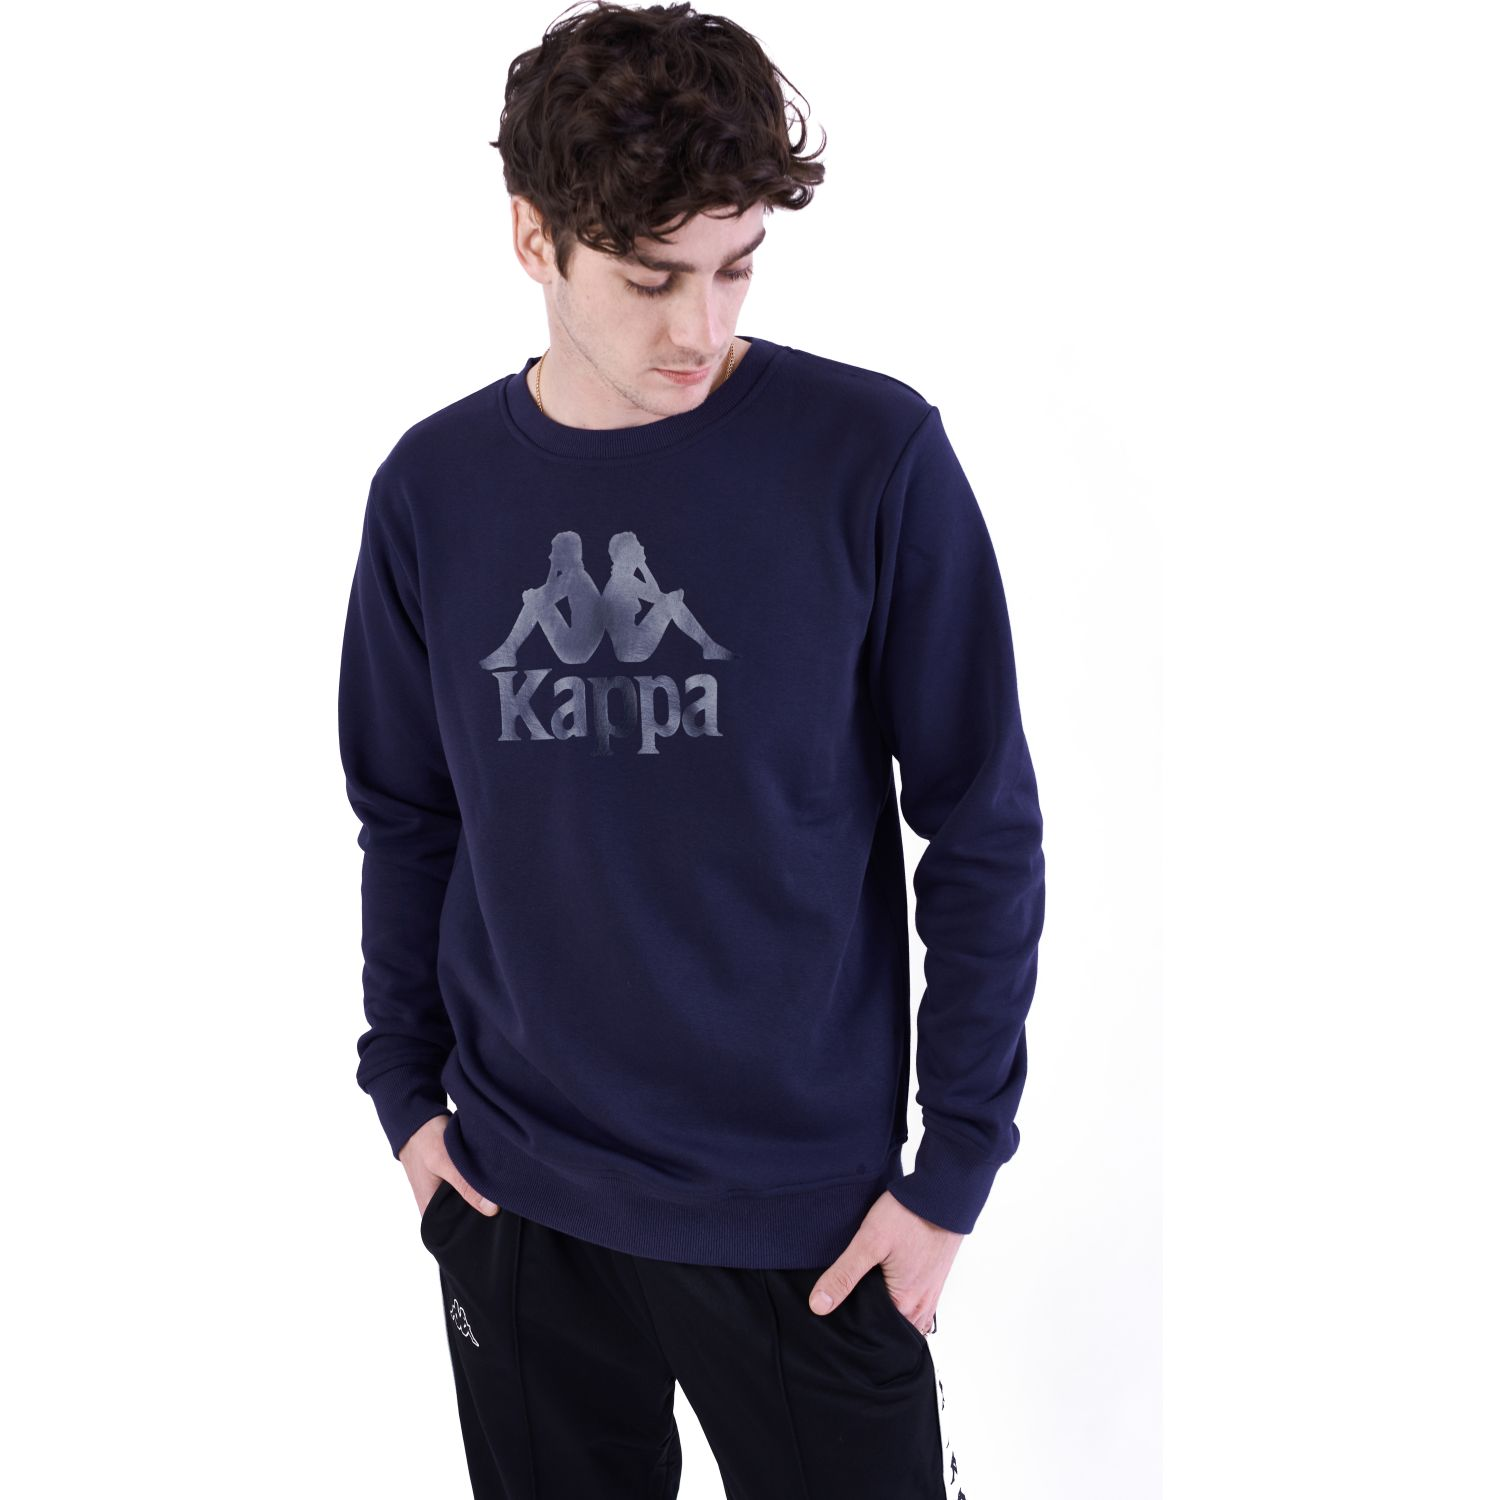 Kappa AUTHENTIC ESLOGARI Azul / negro Hoodies y Sweaters Fashion